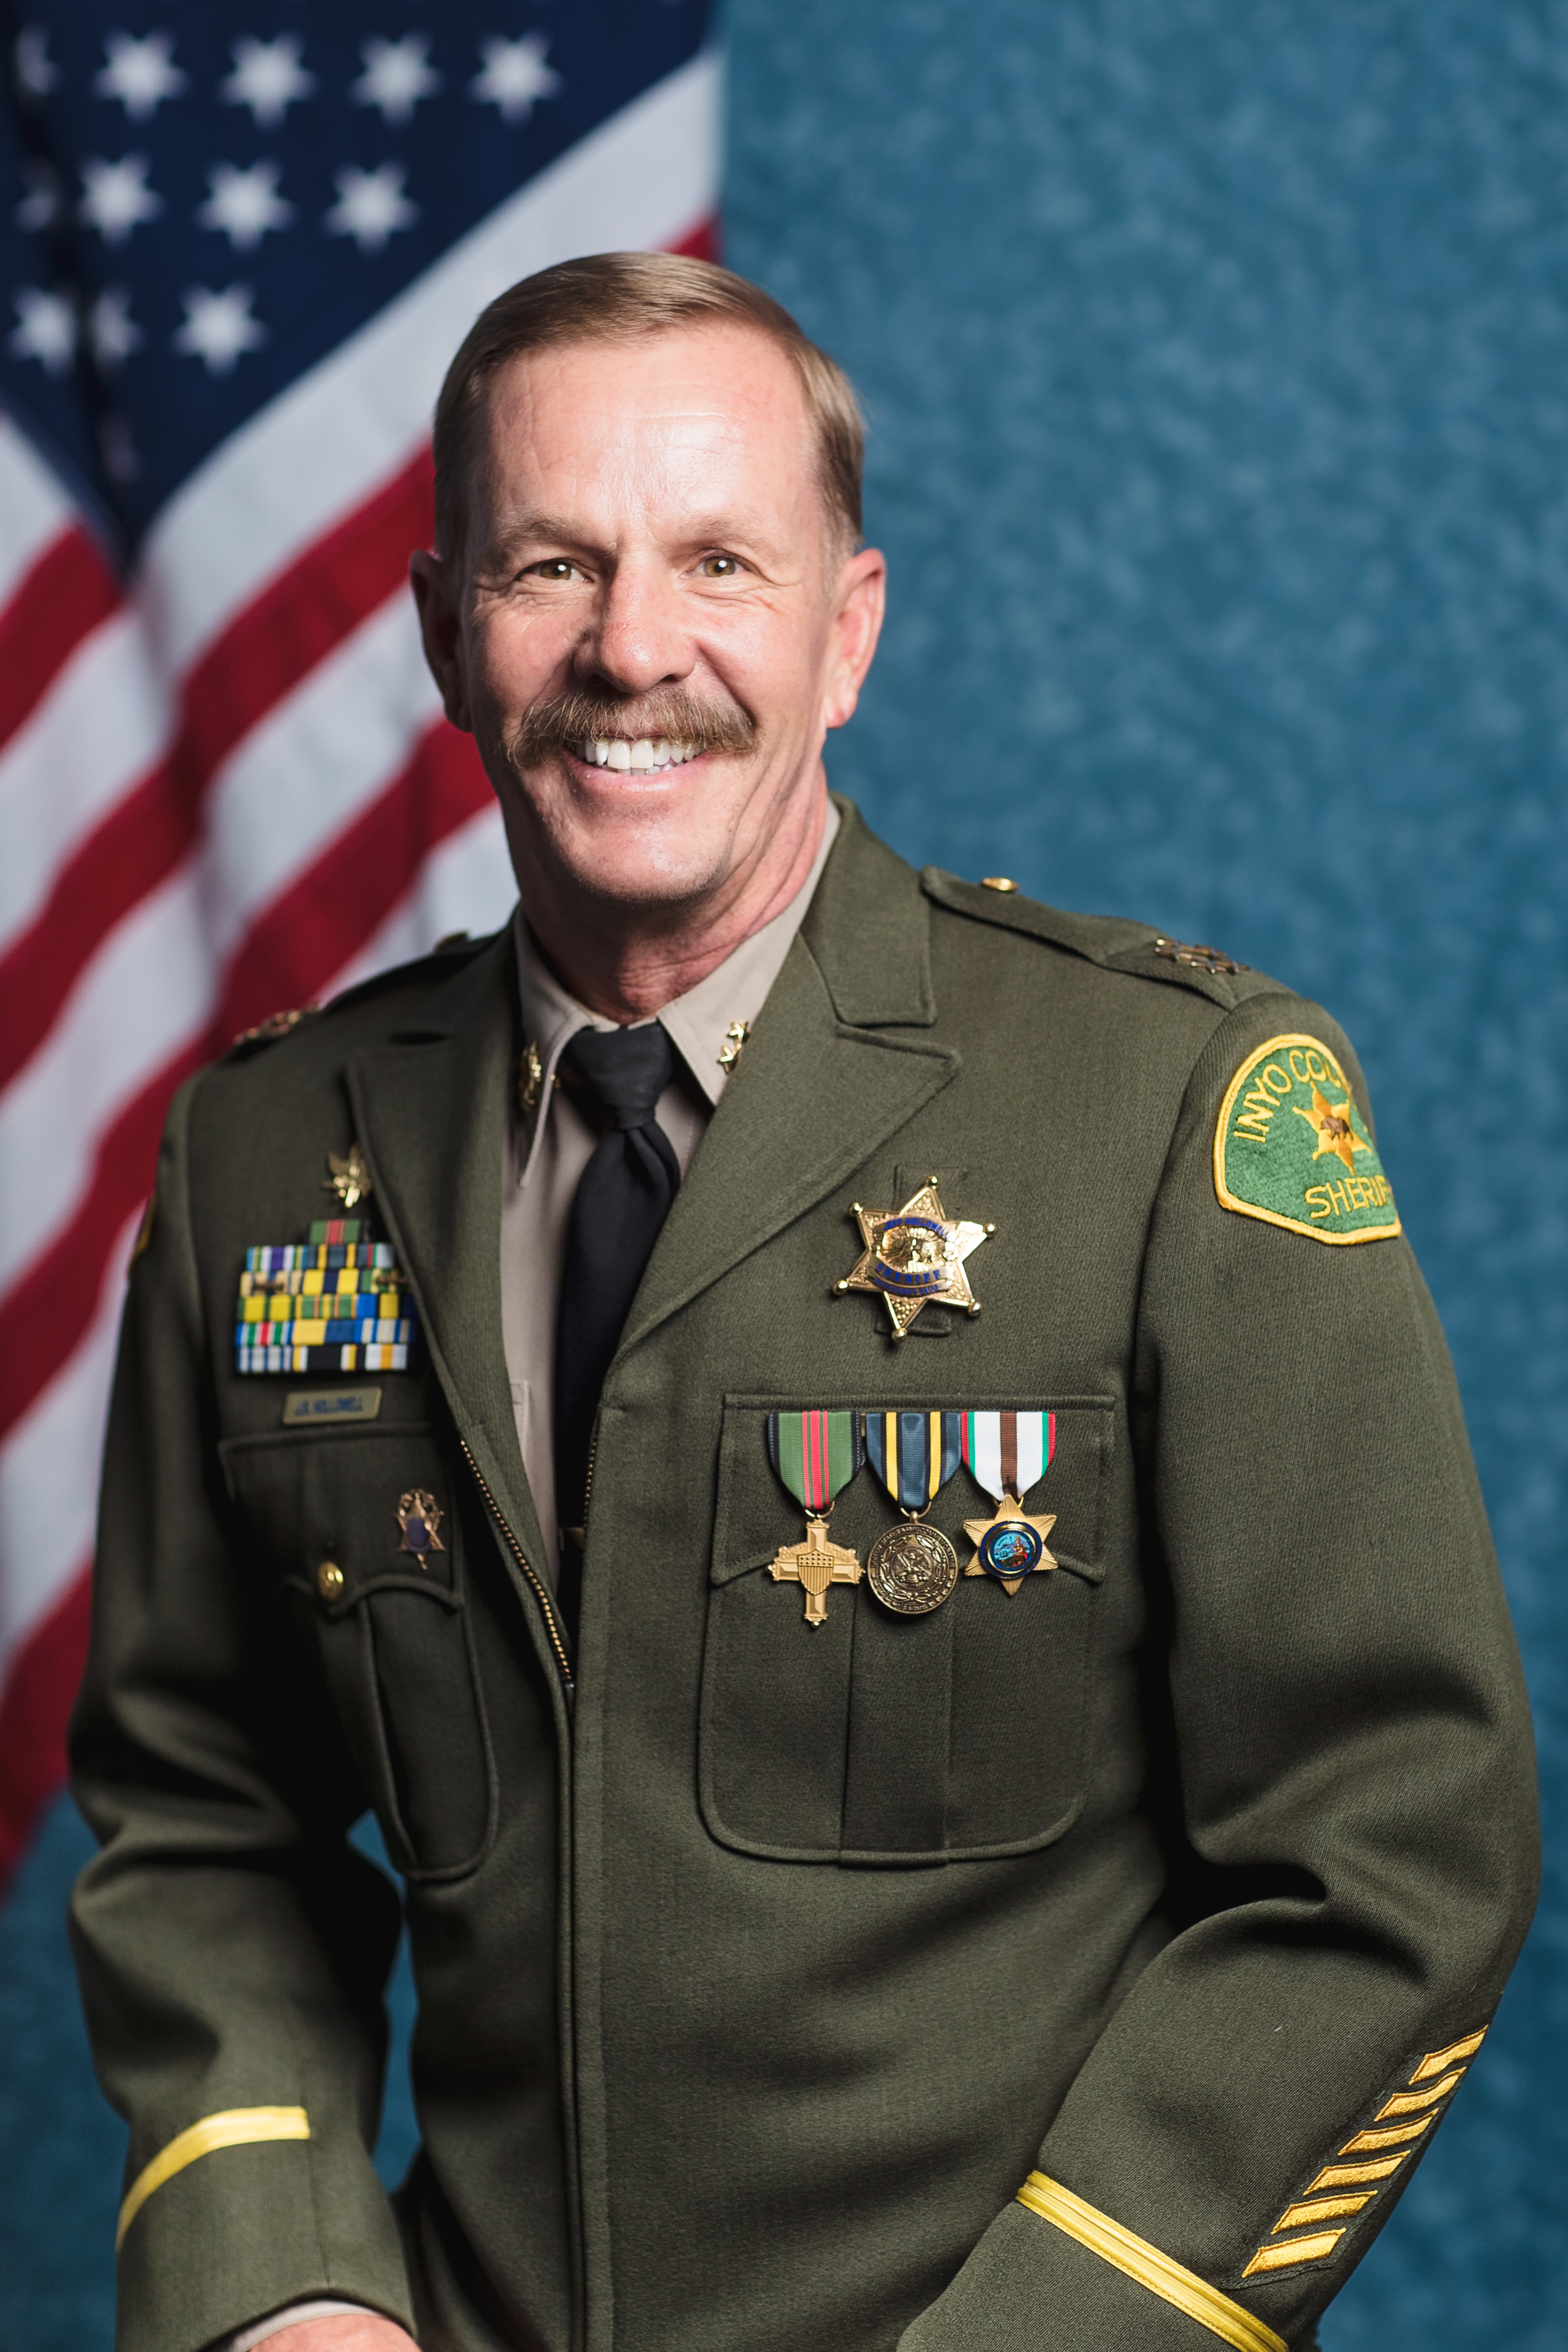 Portrait of Sheriff Jeff R. Hollowell